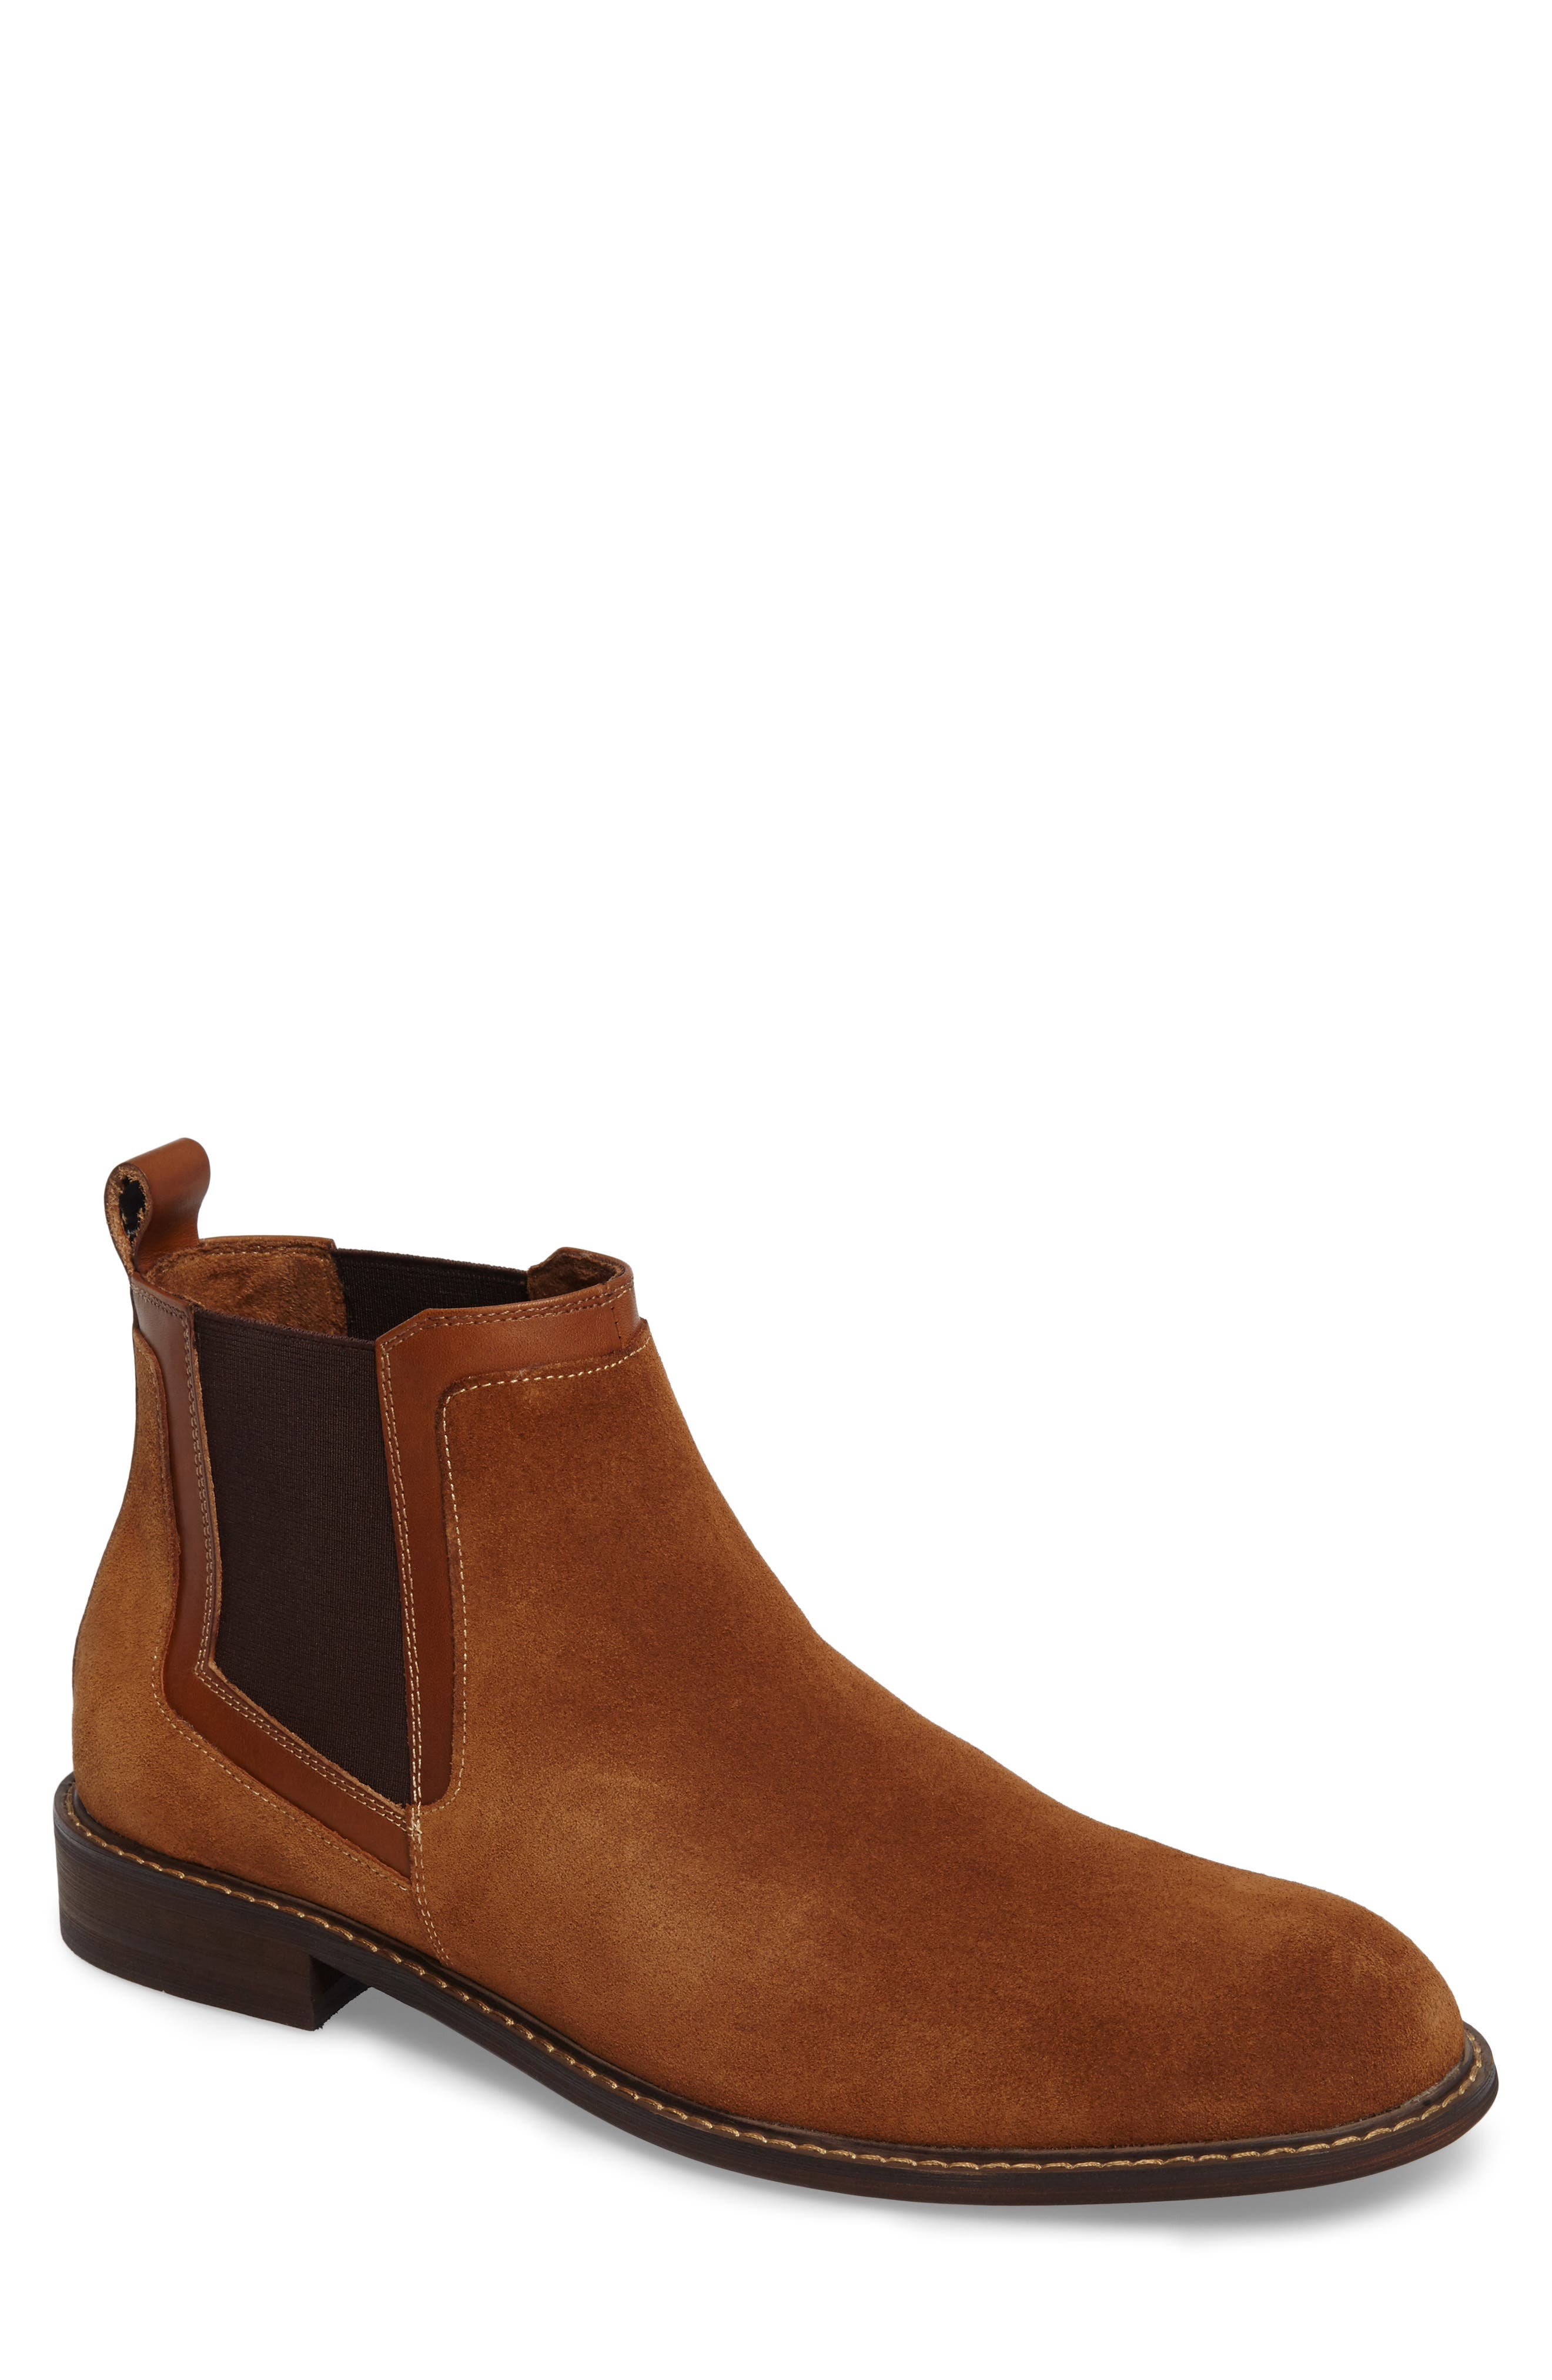 Alternate Image 1 Selected - Kenneth Cole New York Chlesea Boot (Men)